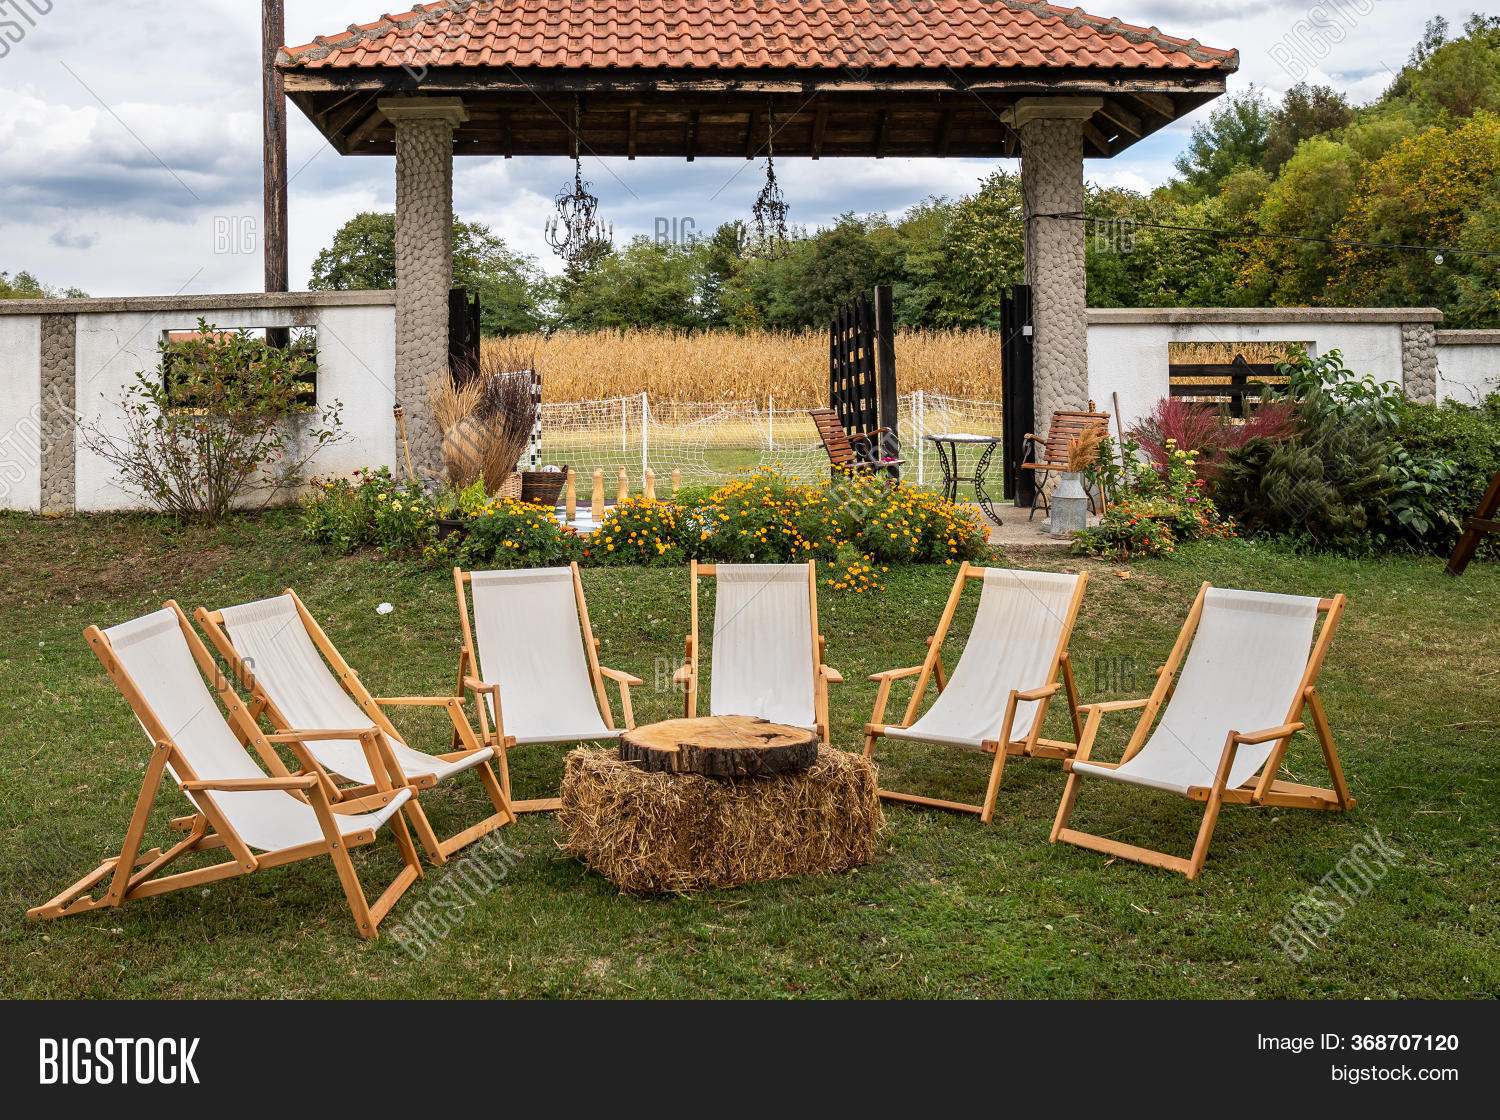 Rustic Outdoor Image Photo Free Trial Bigstock